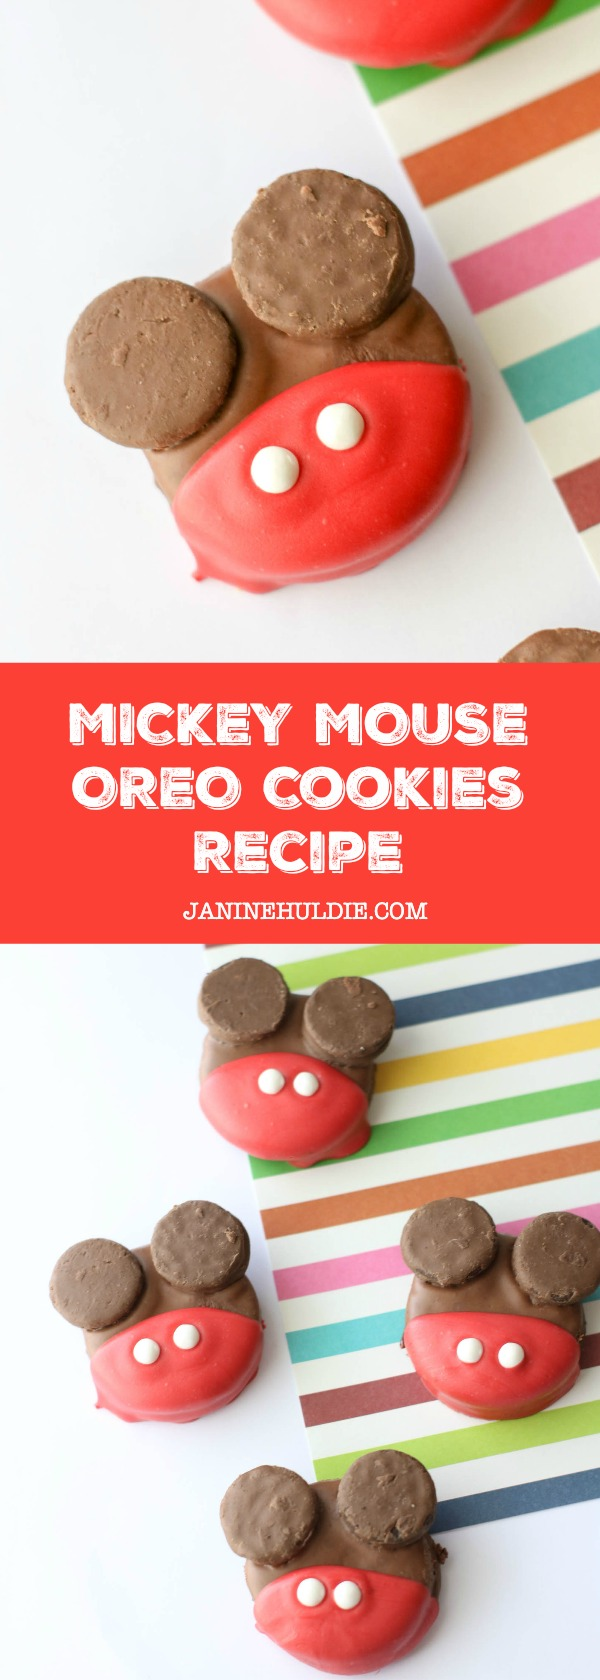 Disney Inspired Mickey Mouse OREO Cookies Recipe